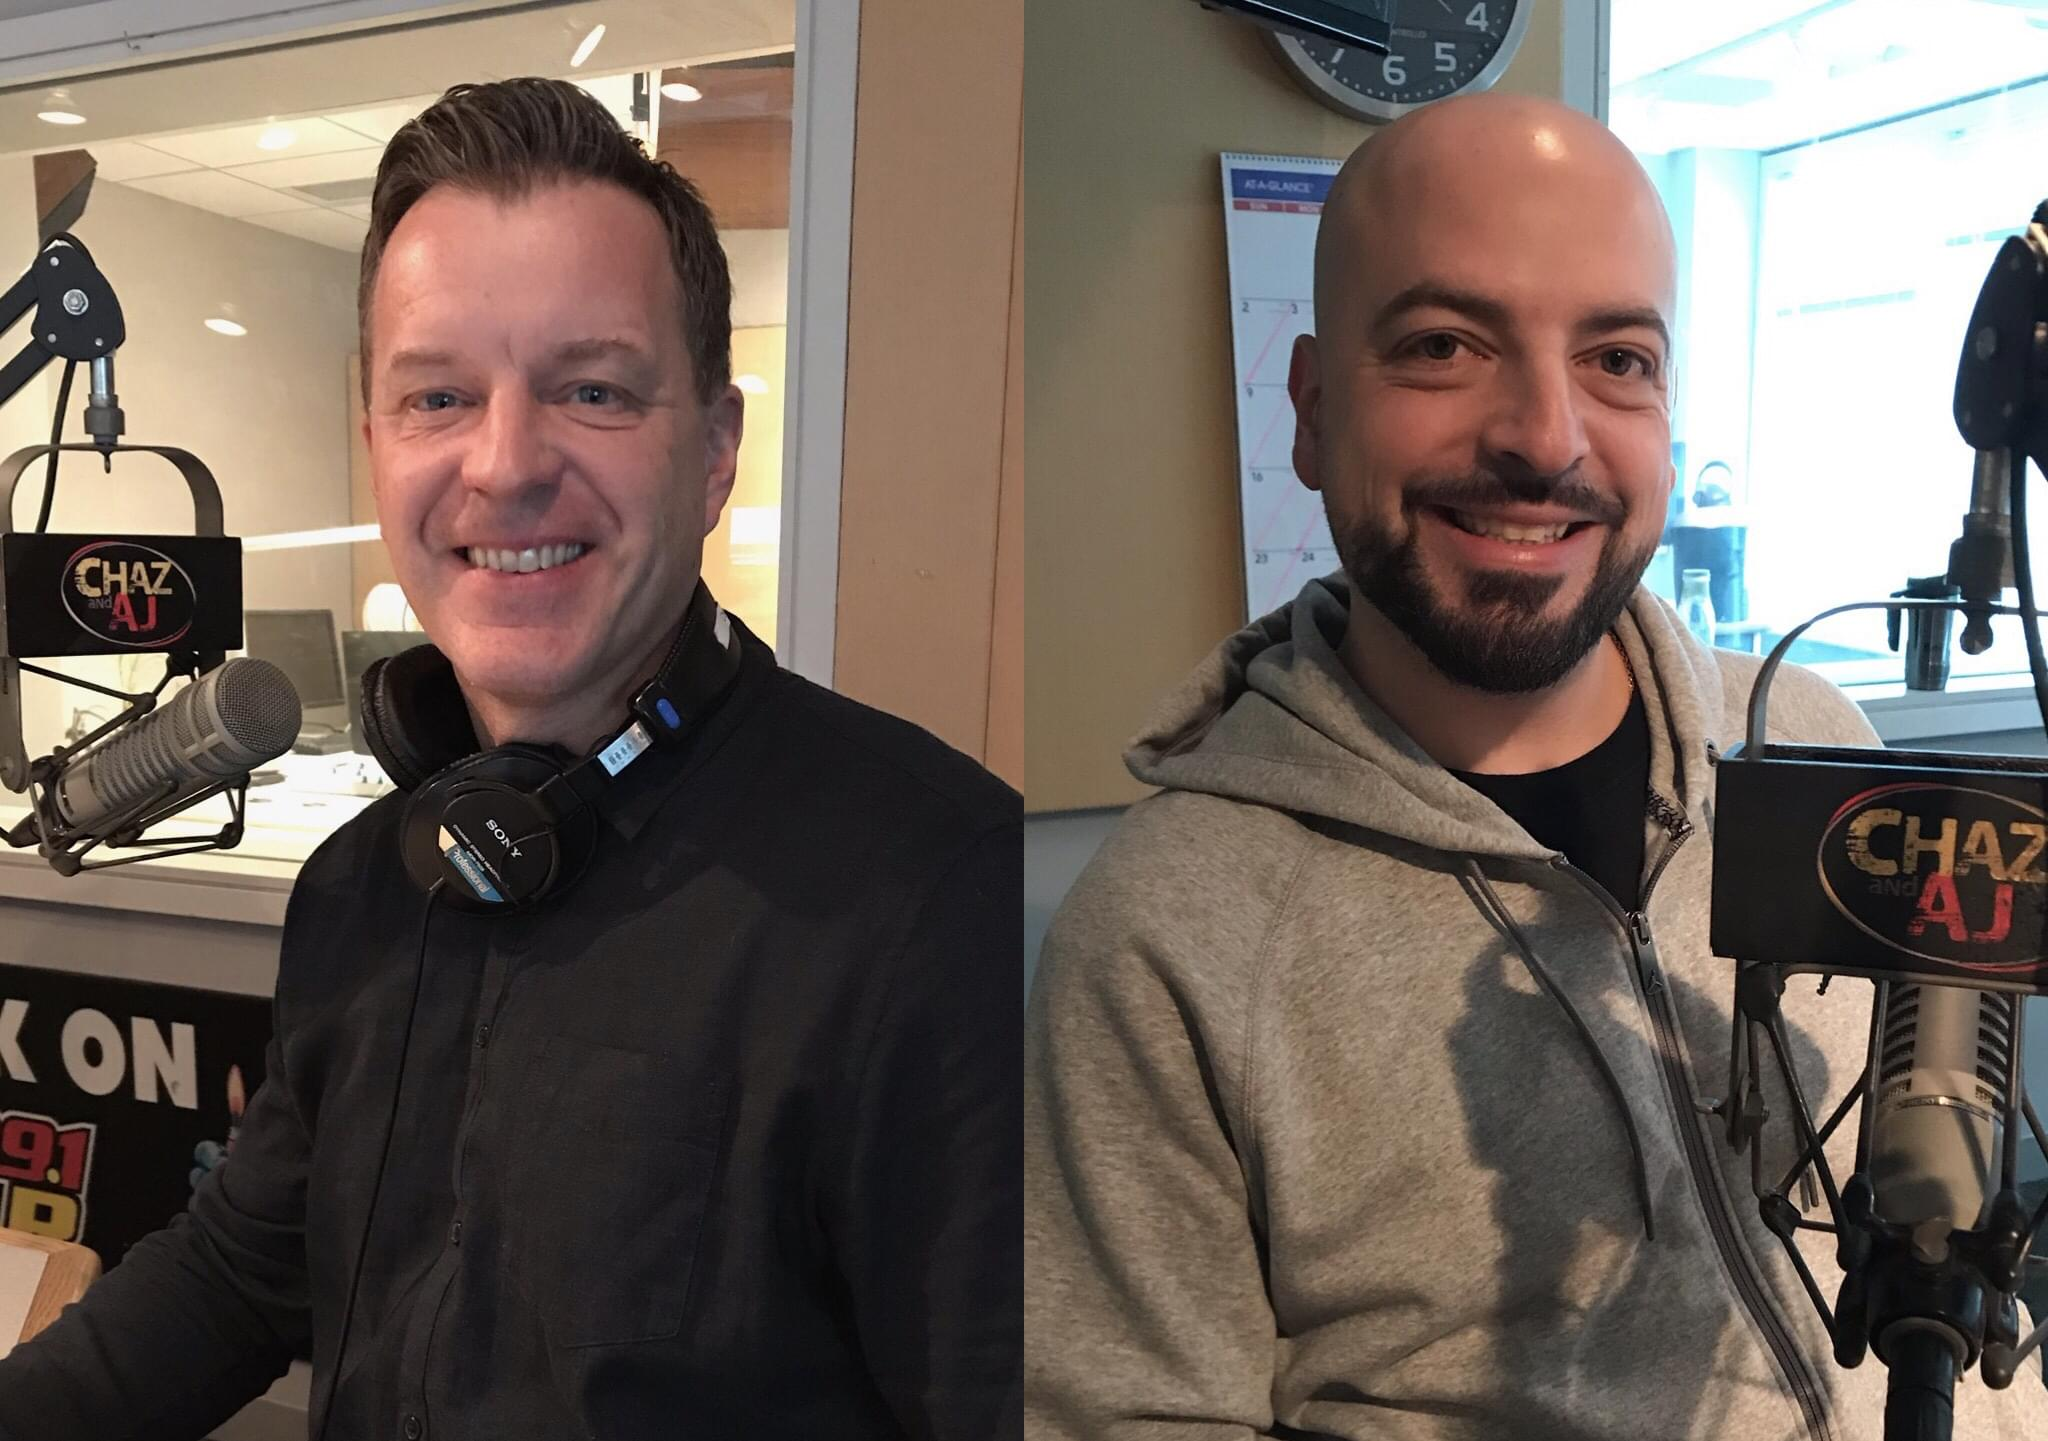 PODCAST – Tuesday, February 25: News 8's John Pierson In Studio And CT Park Shame Judges AJ's Parking